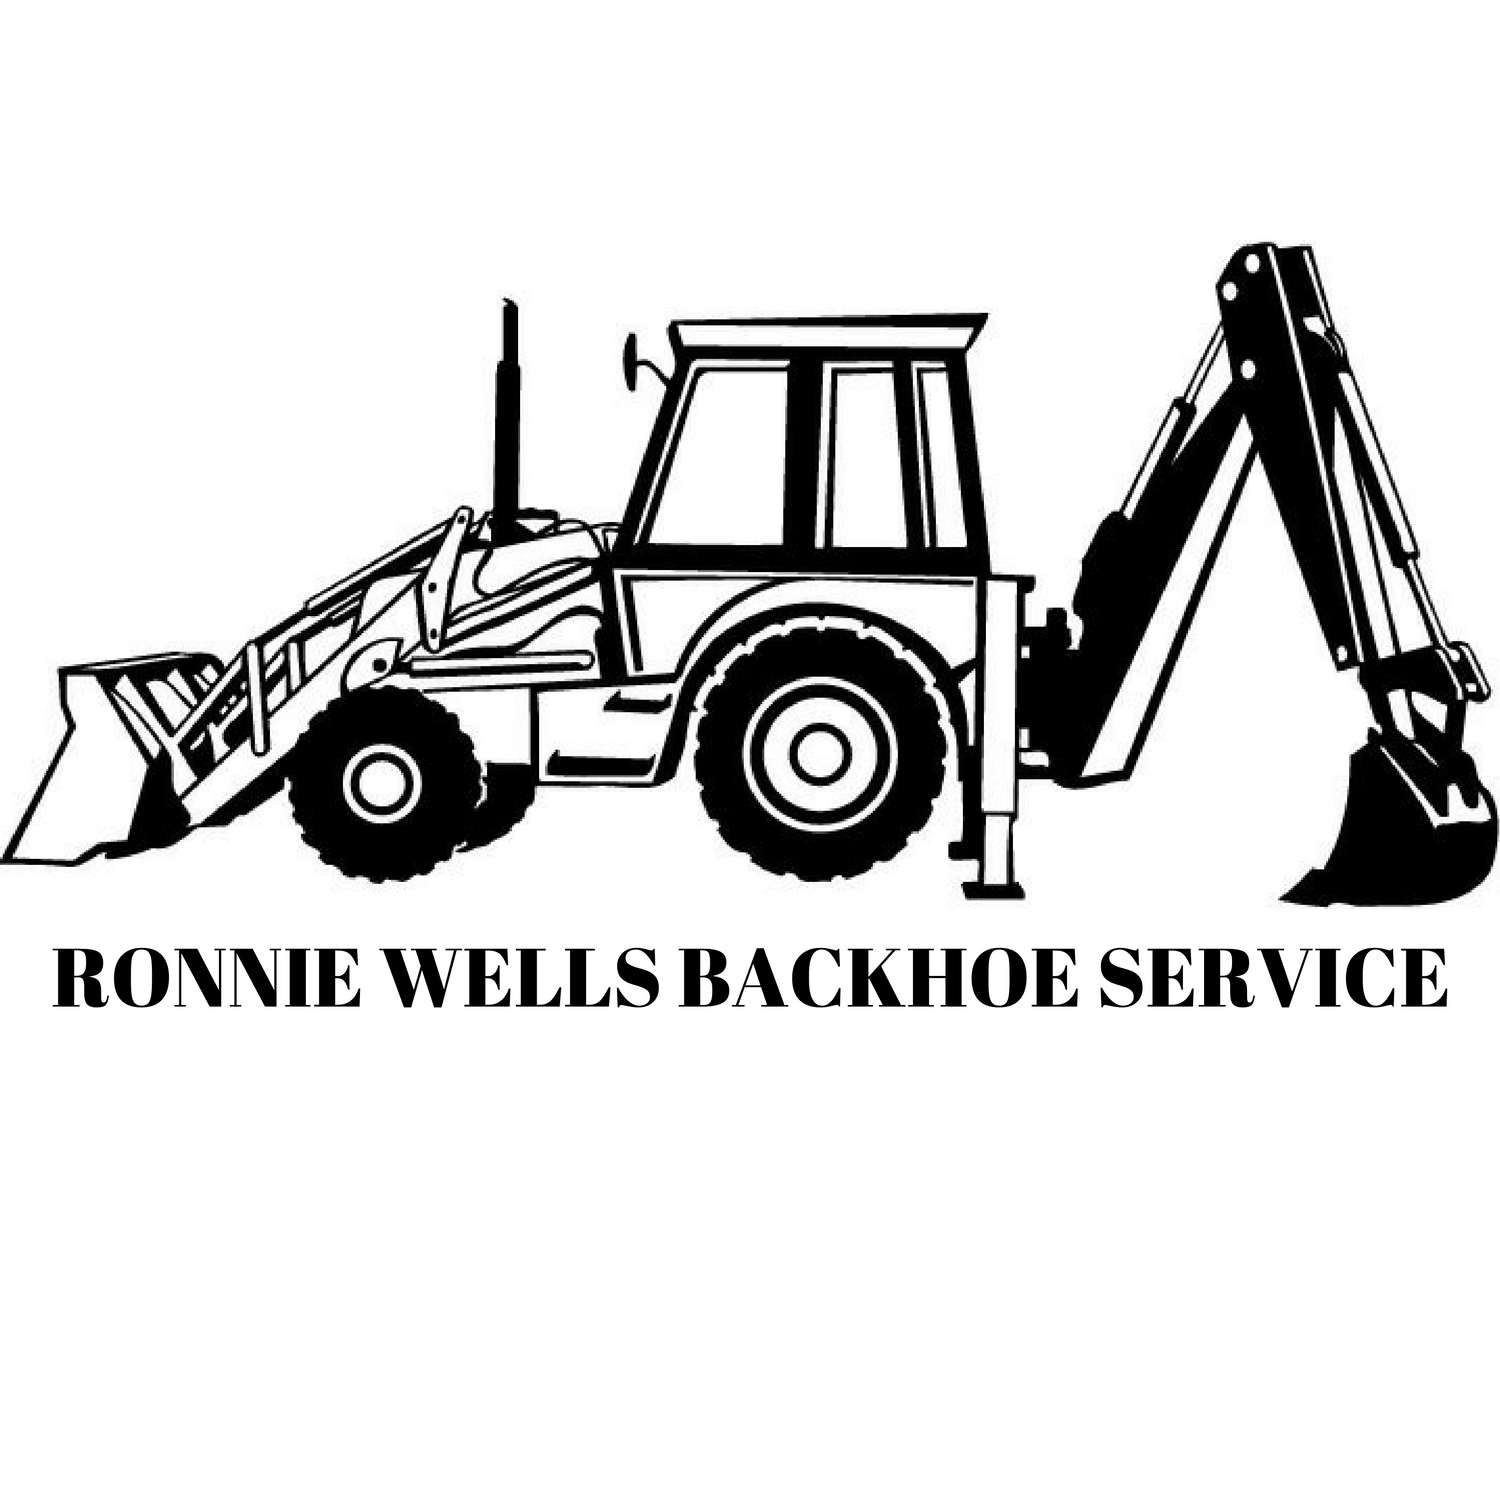 Ronnie Wells Backhoe Service - Anniston, AL 36201 - (256)310-9798 | ShowMeLocal.com